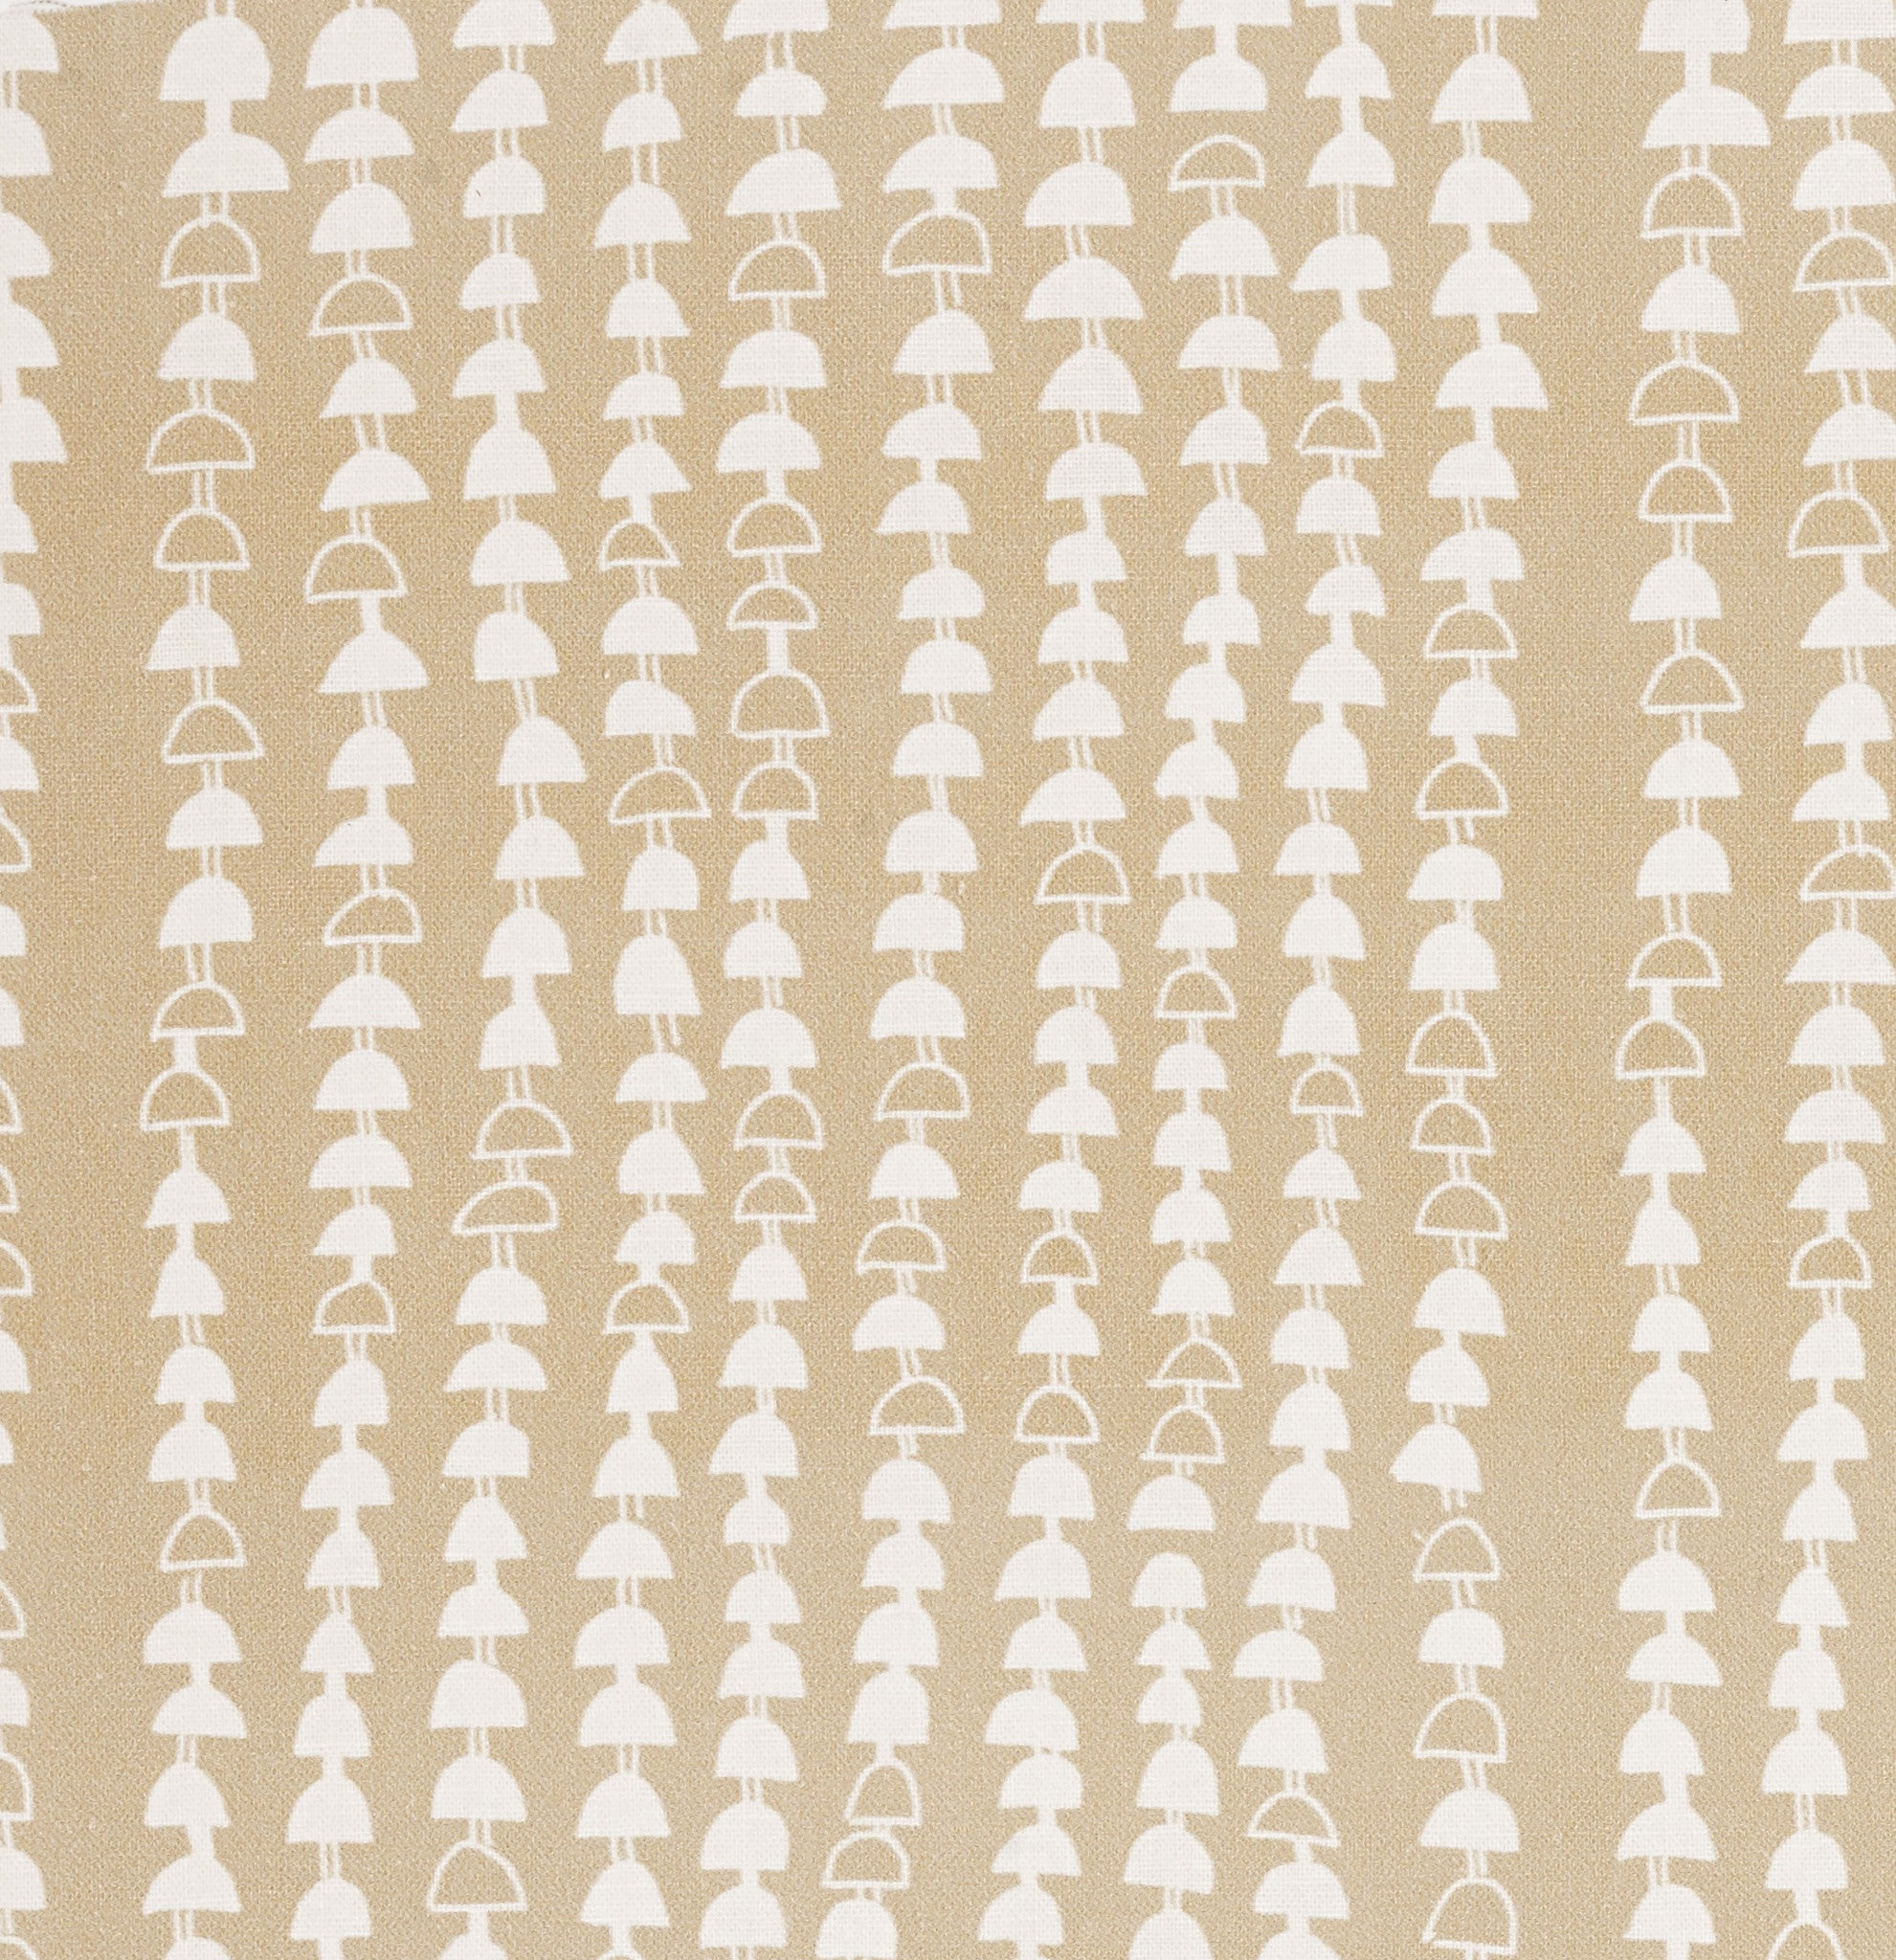 Hopi Graphic Strung Bead Pattern Cotton Linen & Canvas Fabric by the Yard in Off White Earth